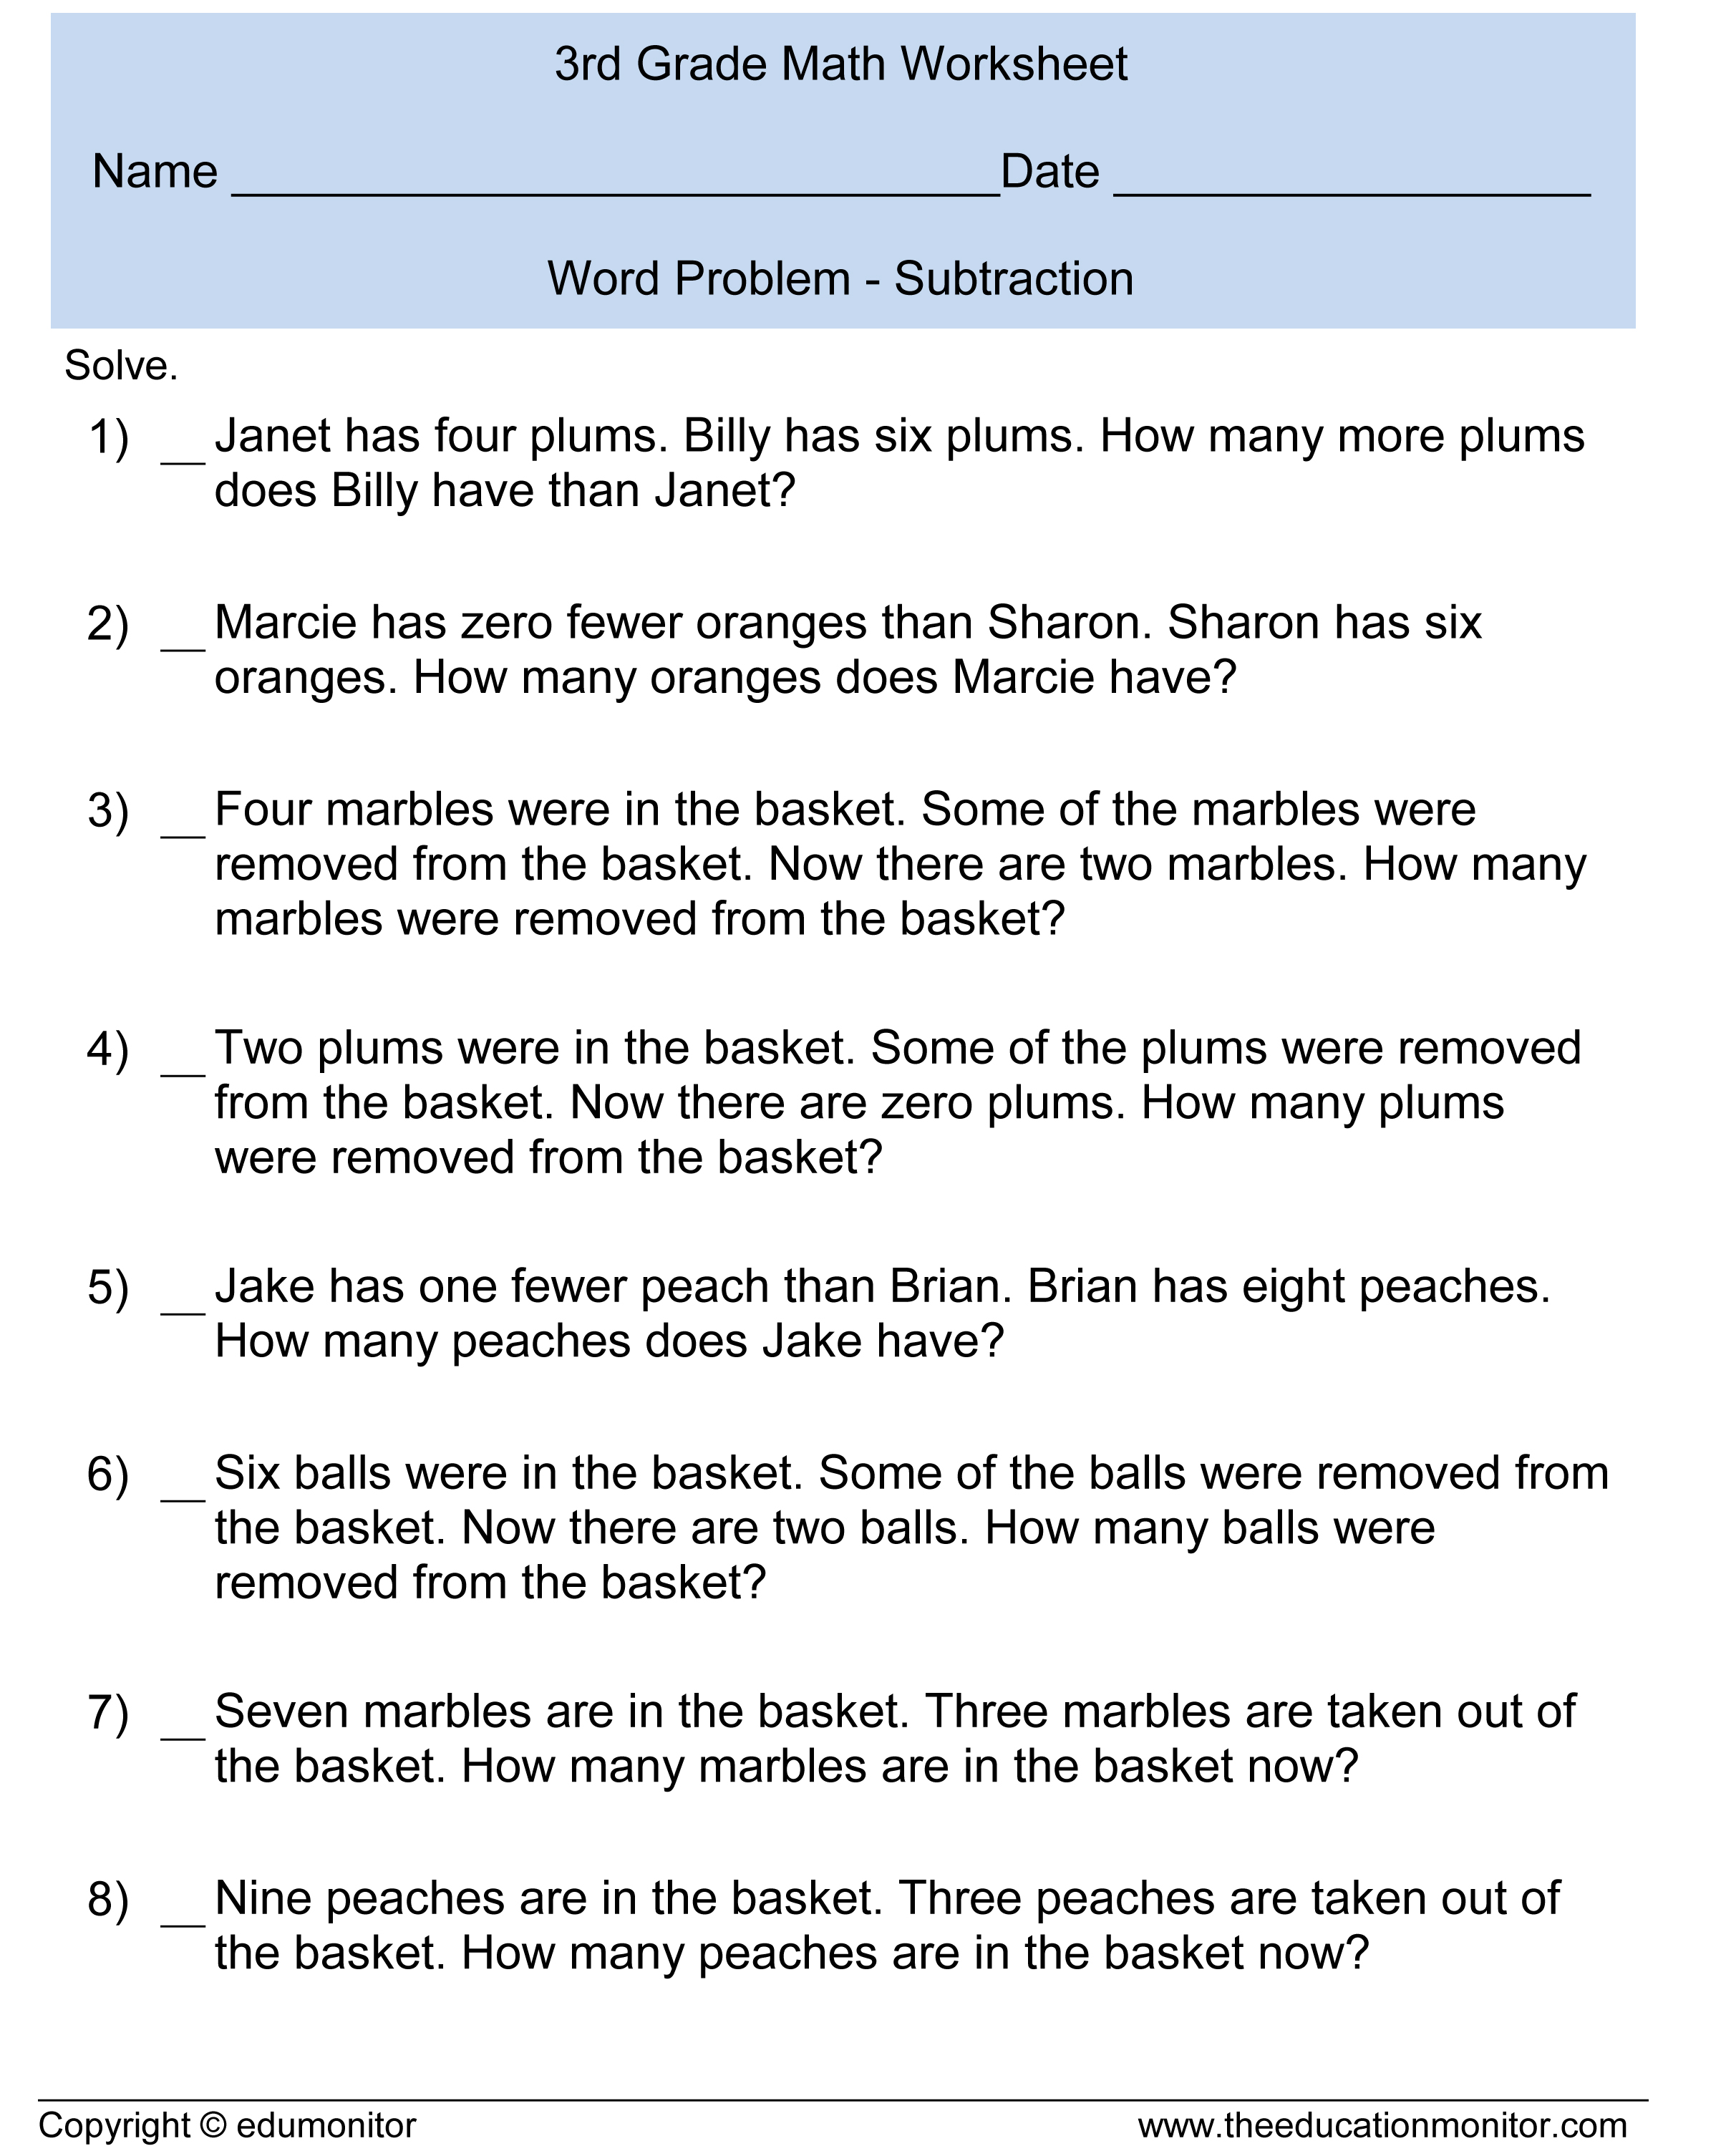 Subtraction Word Problems 3rd Grade – EduMonitor